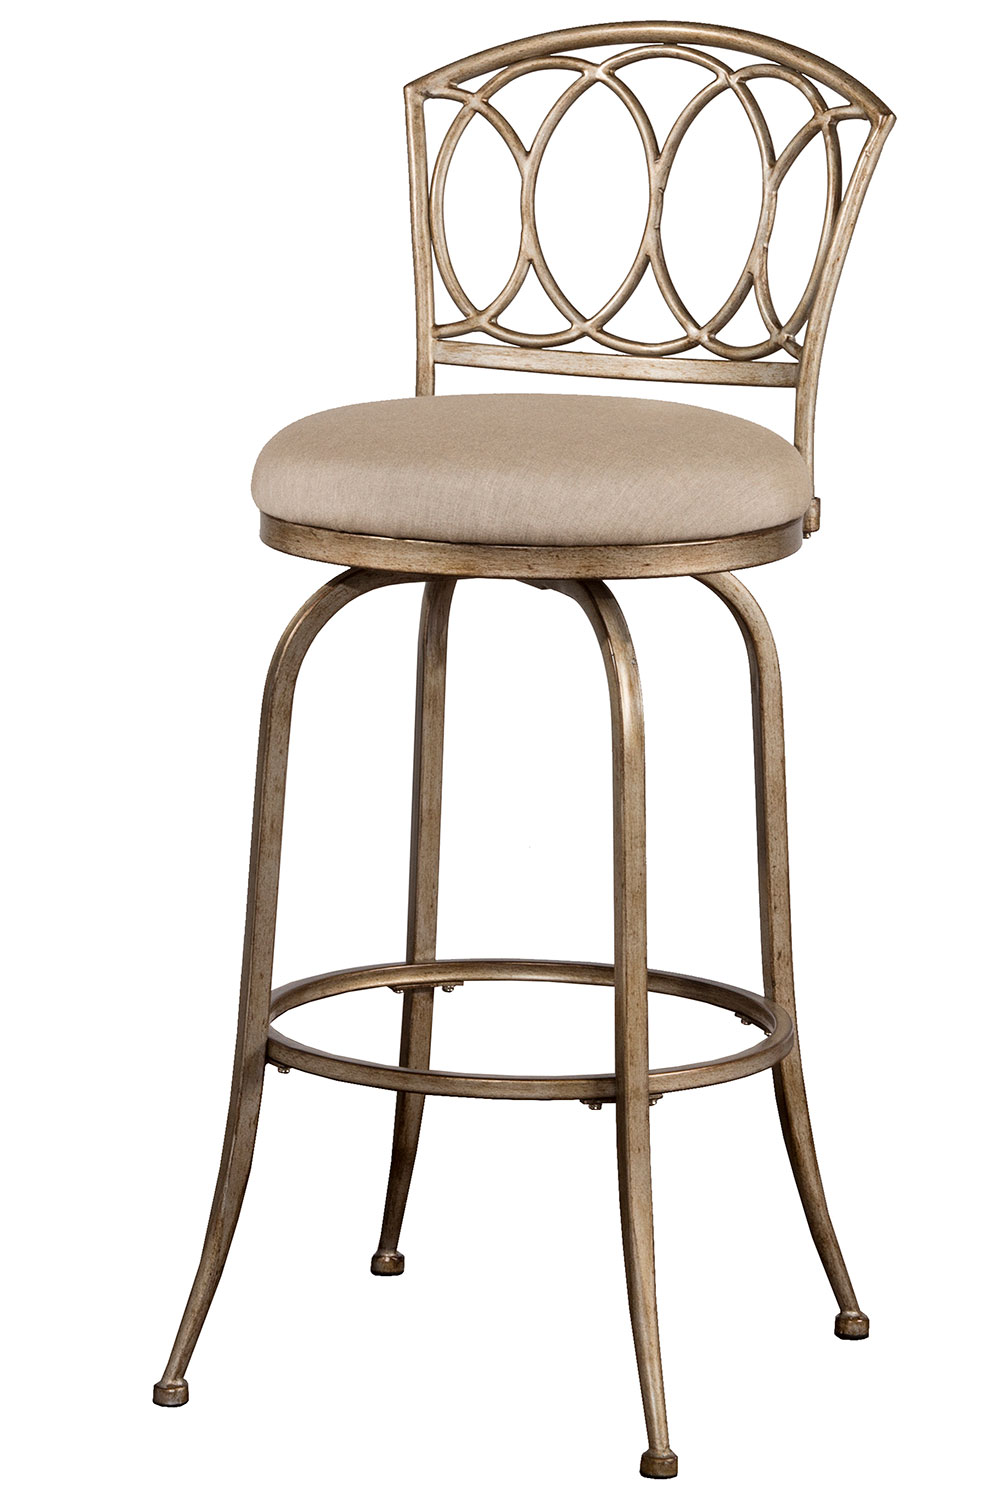 Hillsdale Corrina Indoor Outdoor Swivel Bar Stool